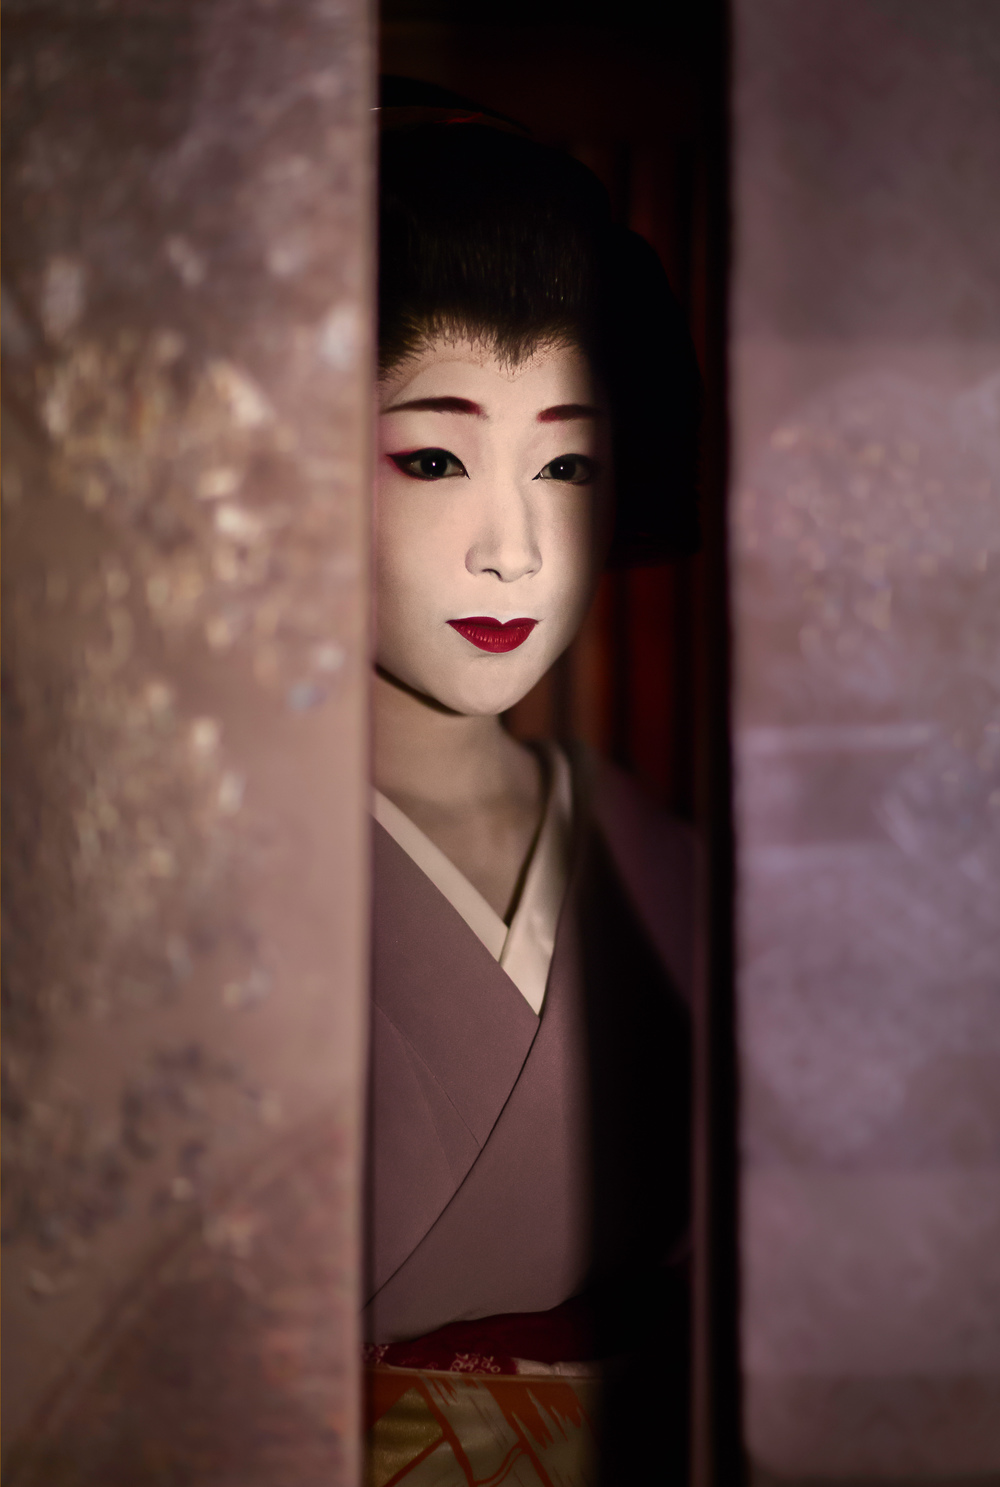 Seeing Geiko Exhibition Image 2